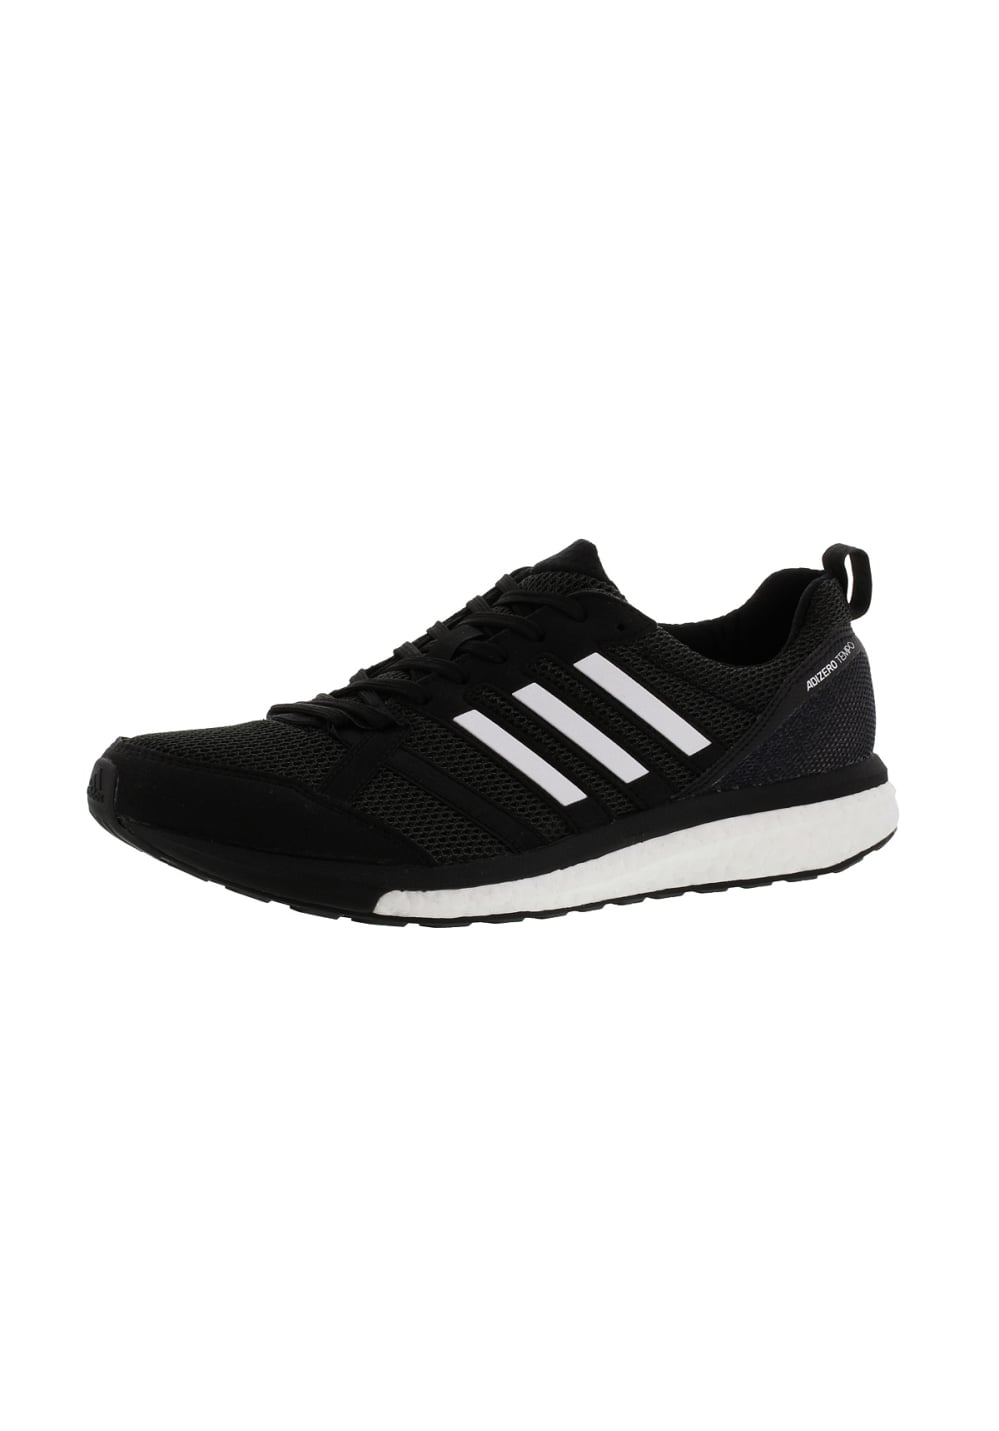 3755a952837ca adidas adiZero Tempo 9 - Running shoes for Women - Black